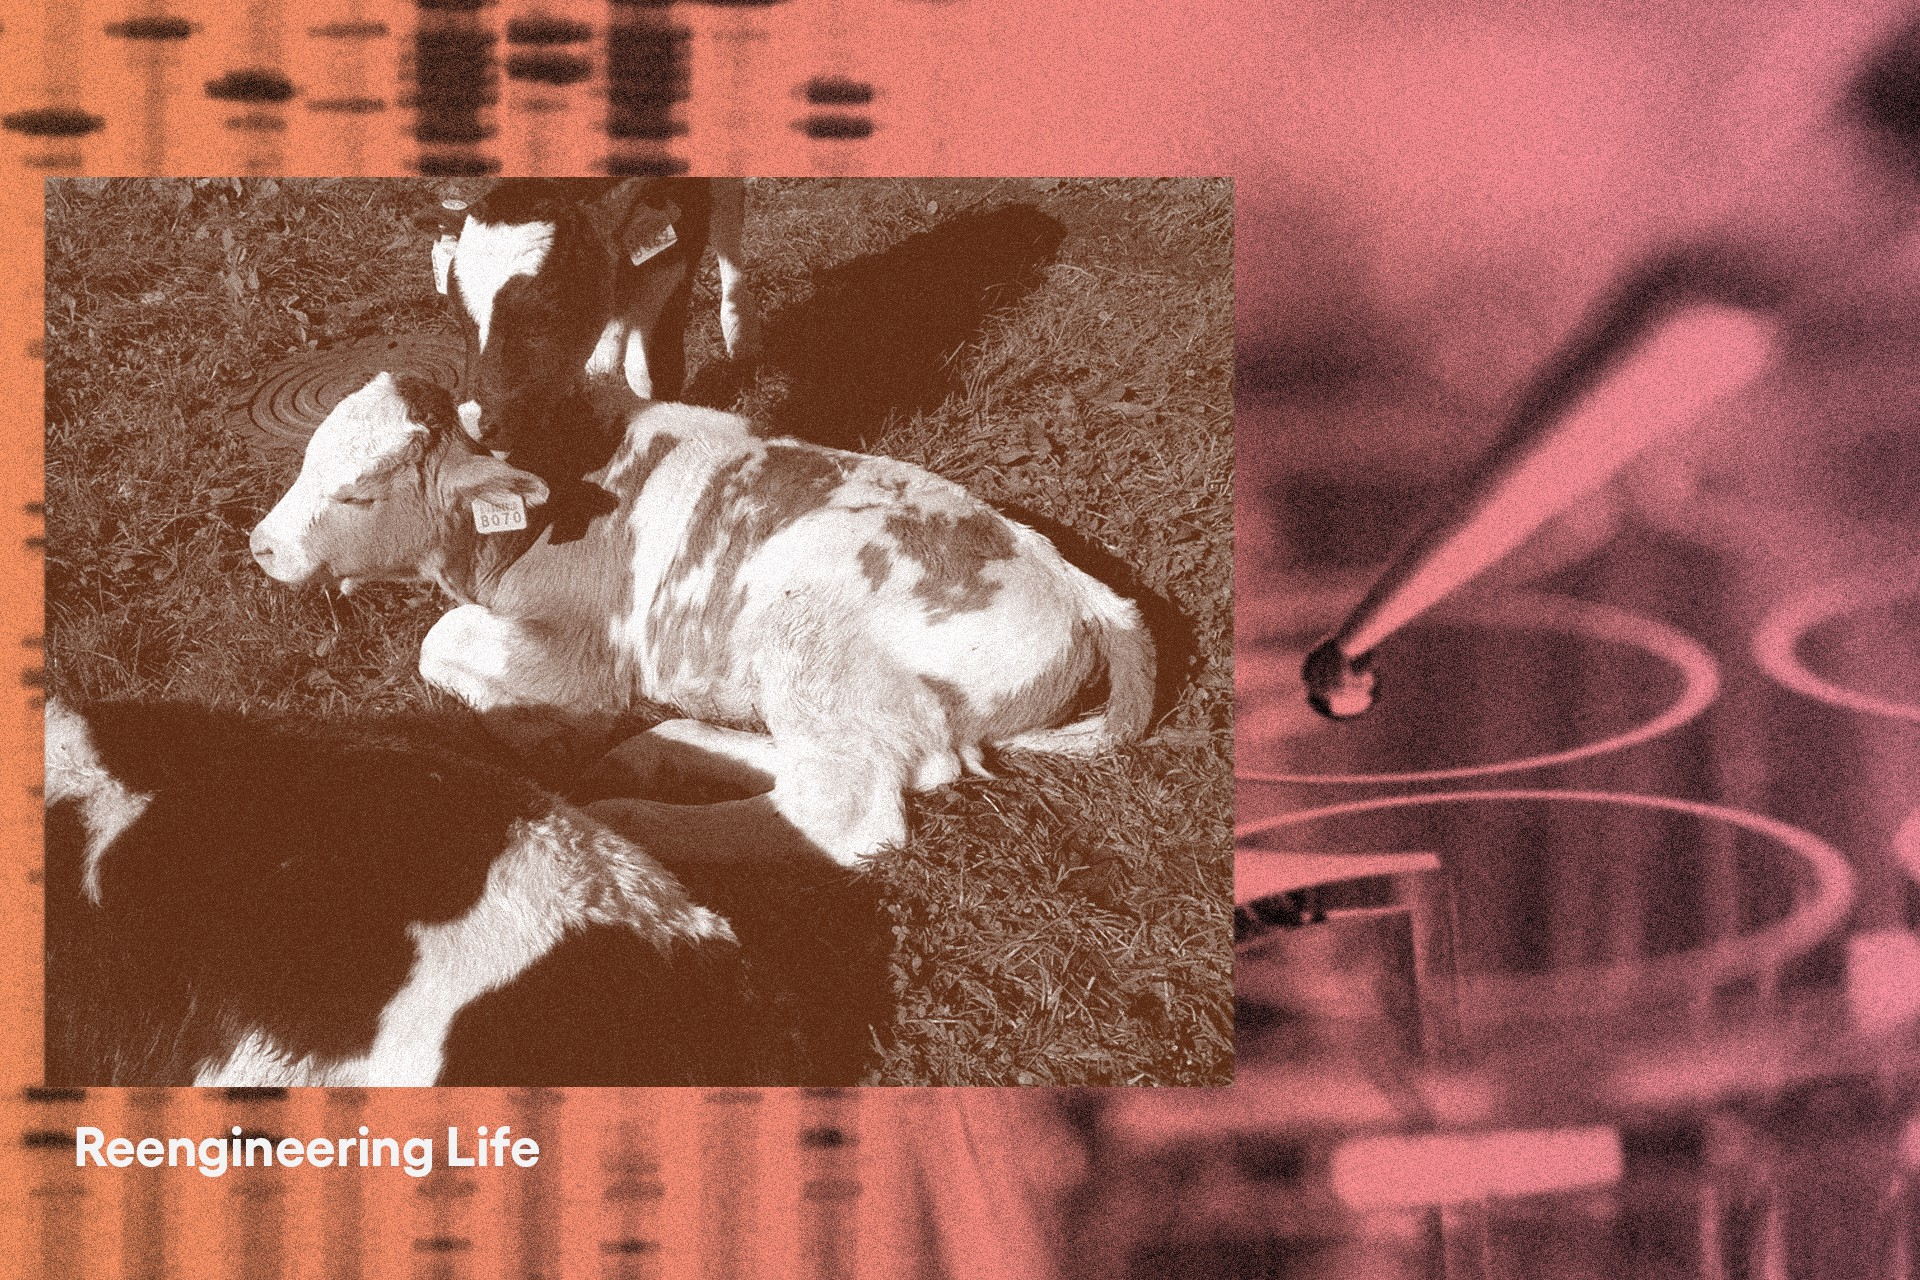 Photo illustration of pipette in background with cows in foreground.